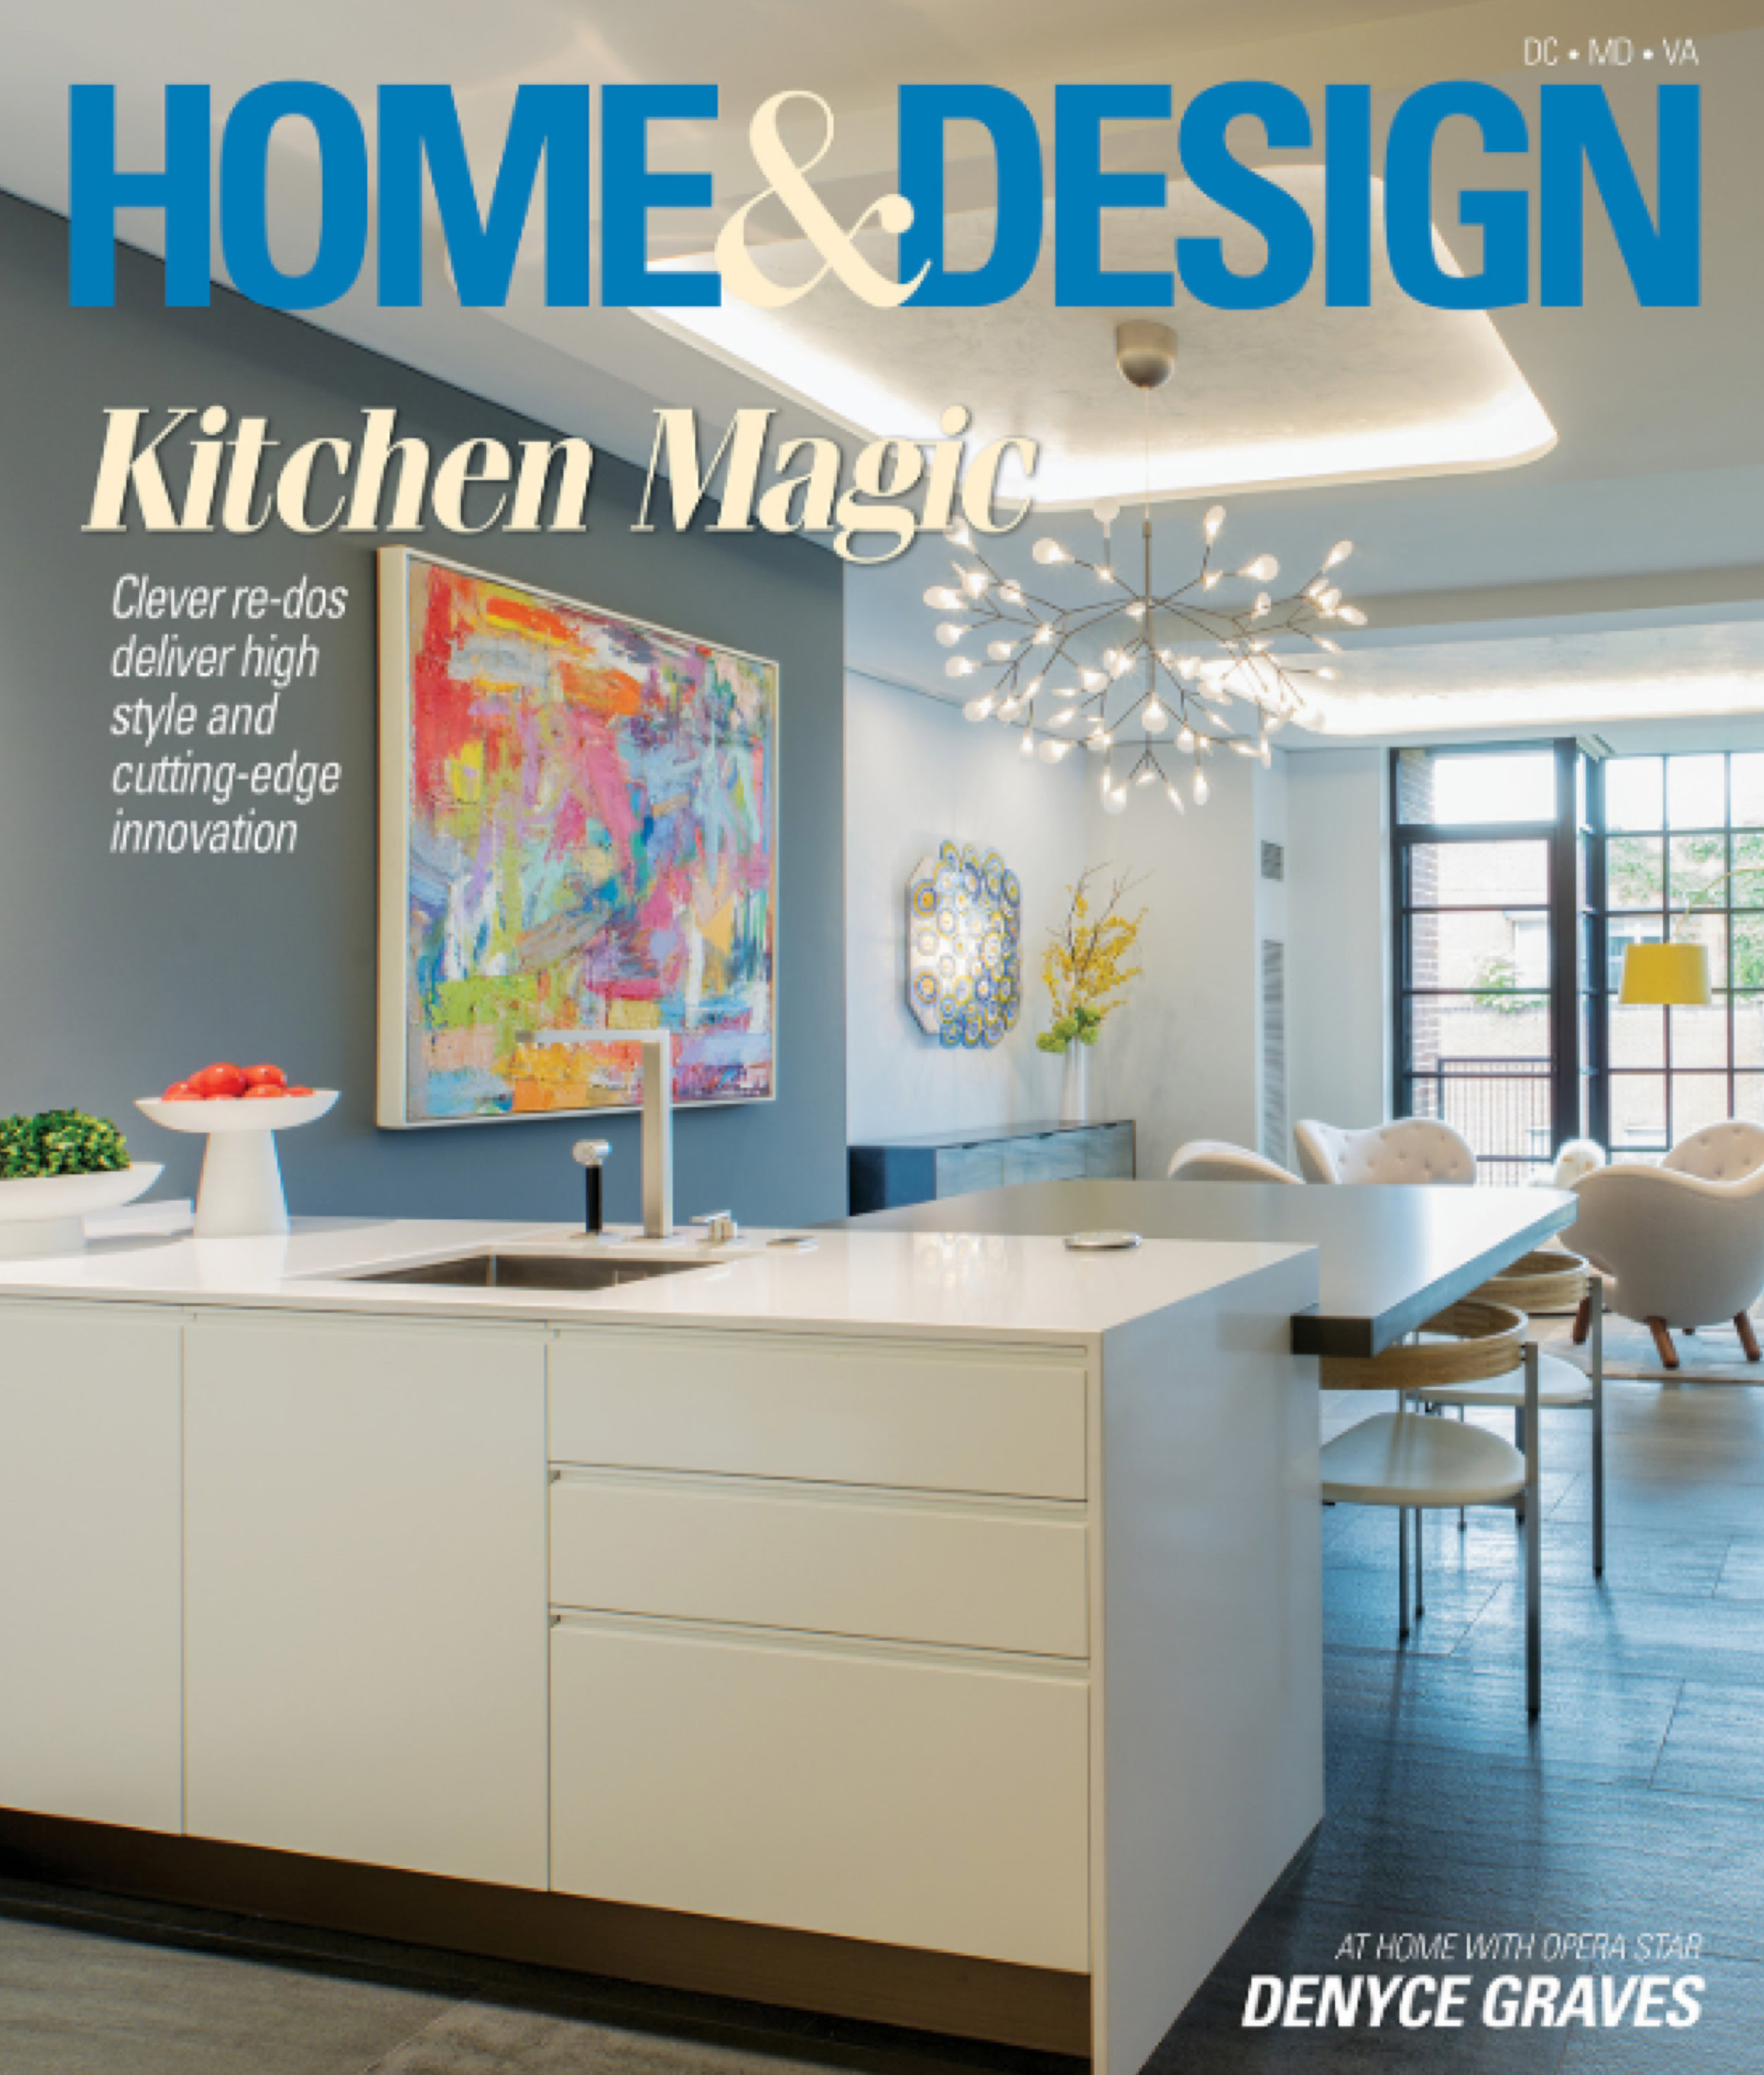 Home & Design Cover_Winter 2019.001.jpeg